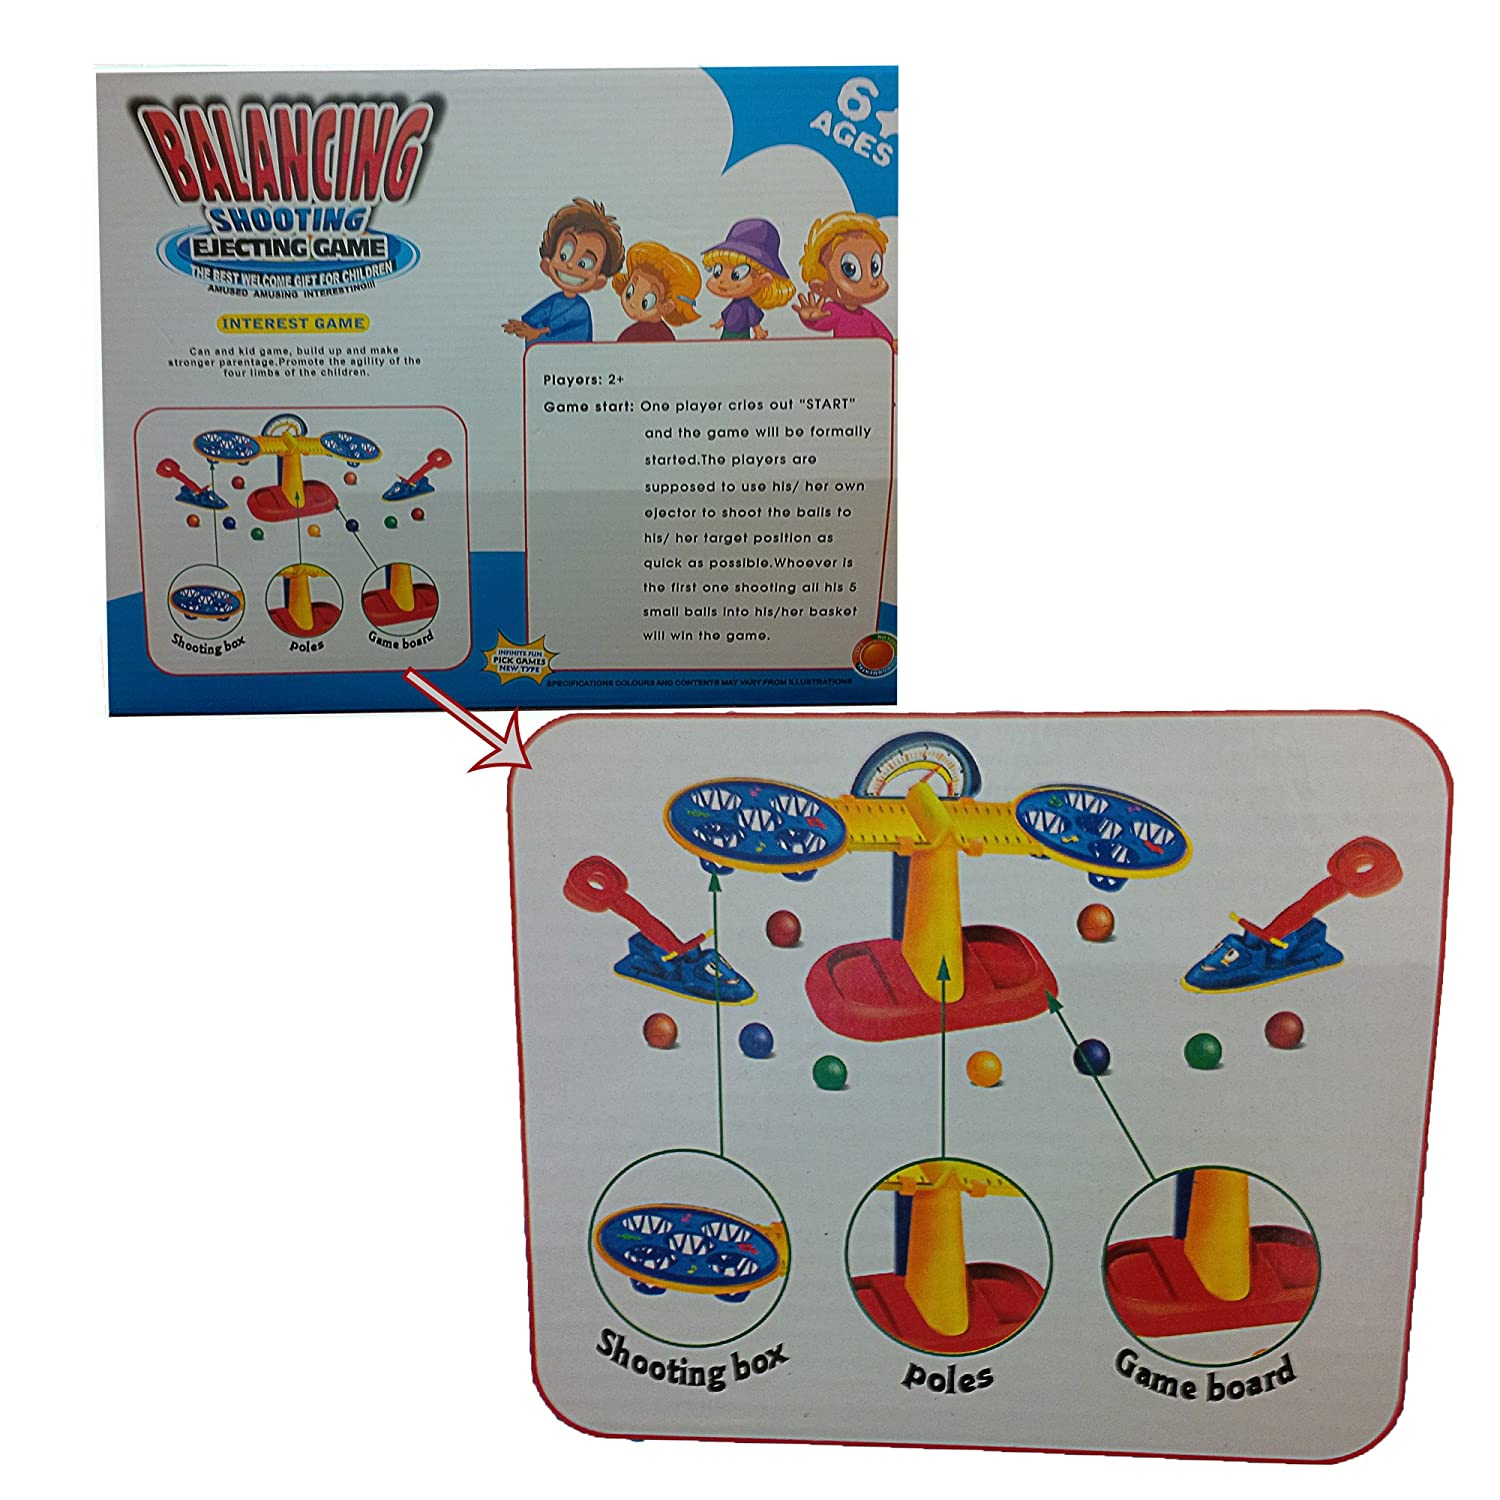 Fun//Interactive Shoot and Score Toy Dazzling Toys Balancing Shooting Basket Ball Game Improves Strategy//Balance Compact//Portable